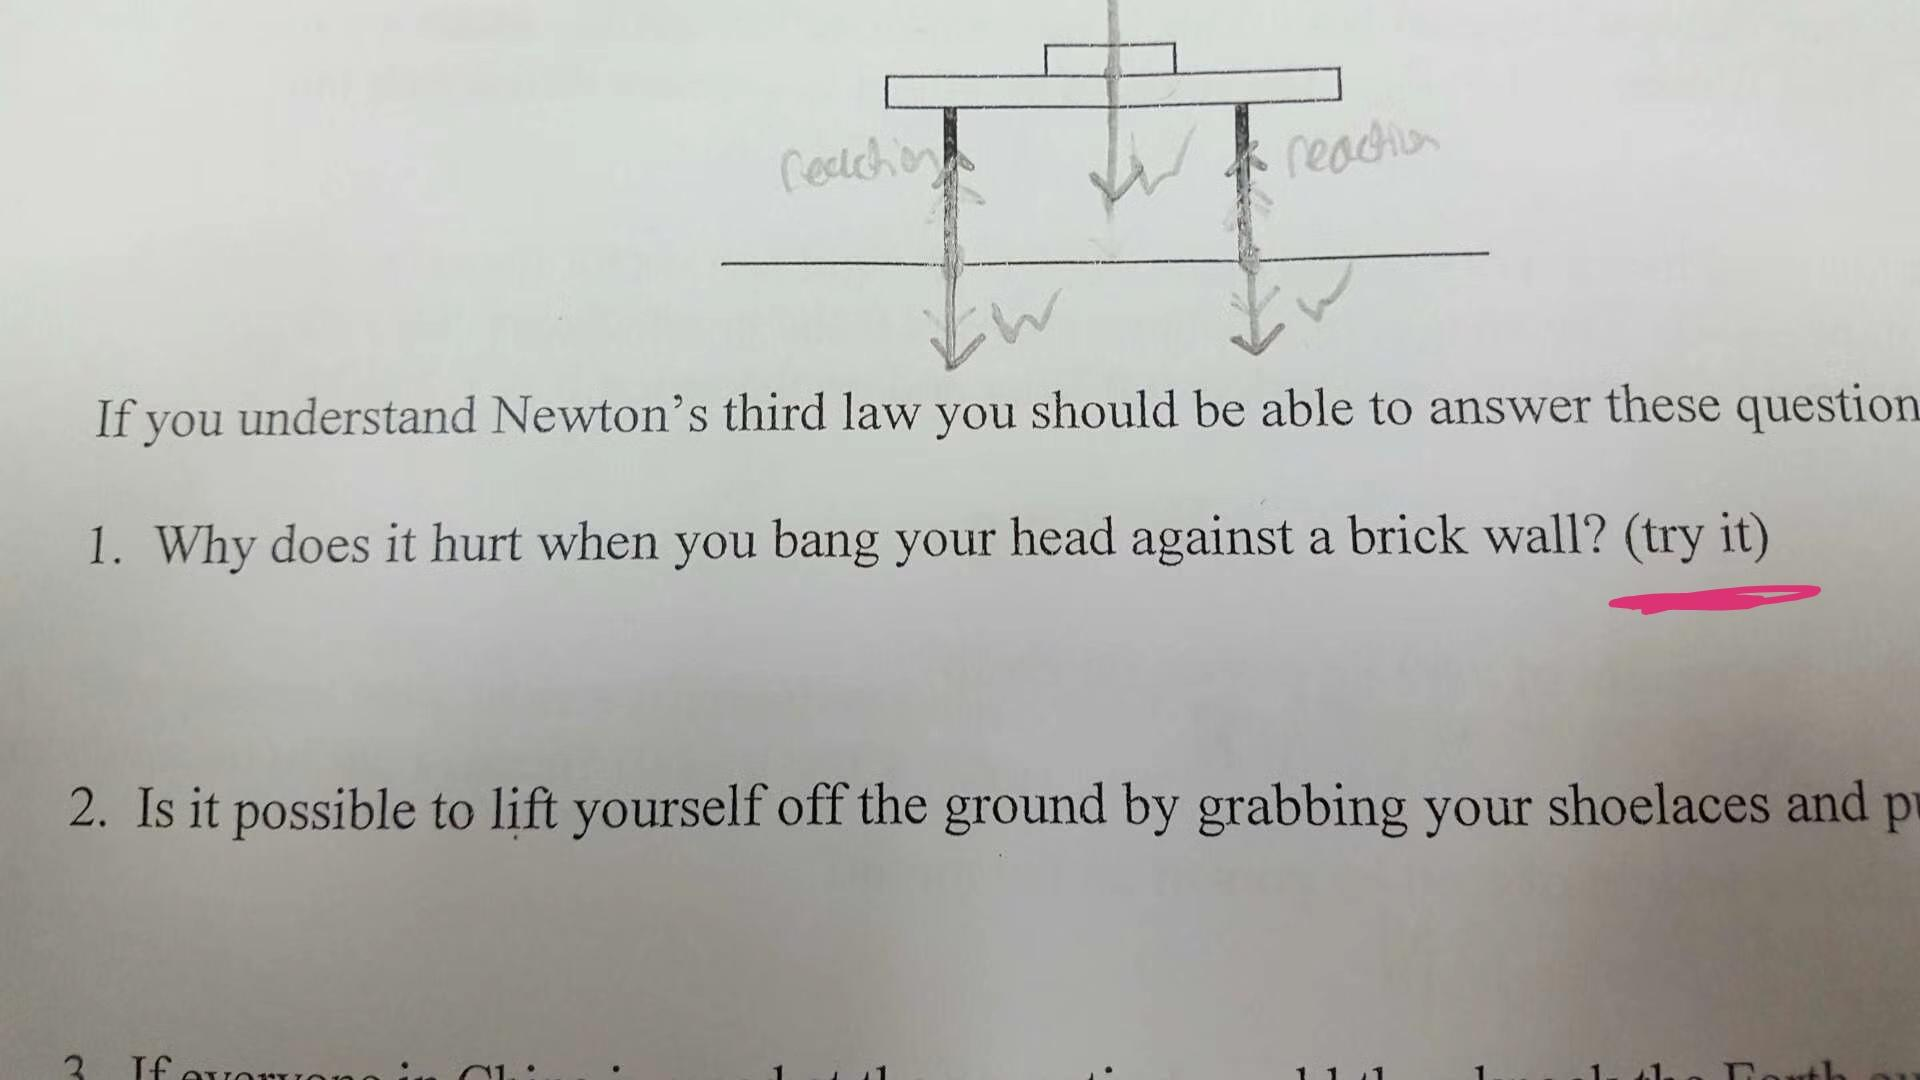 I Was Looking At Old Pictures On My Phone Where I Found A Picture Of This Physics Worksheet With